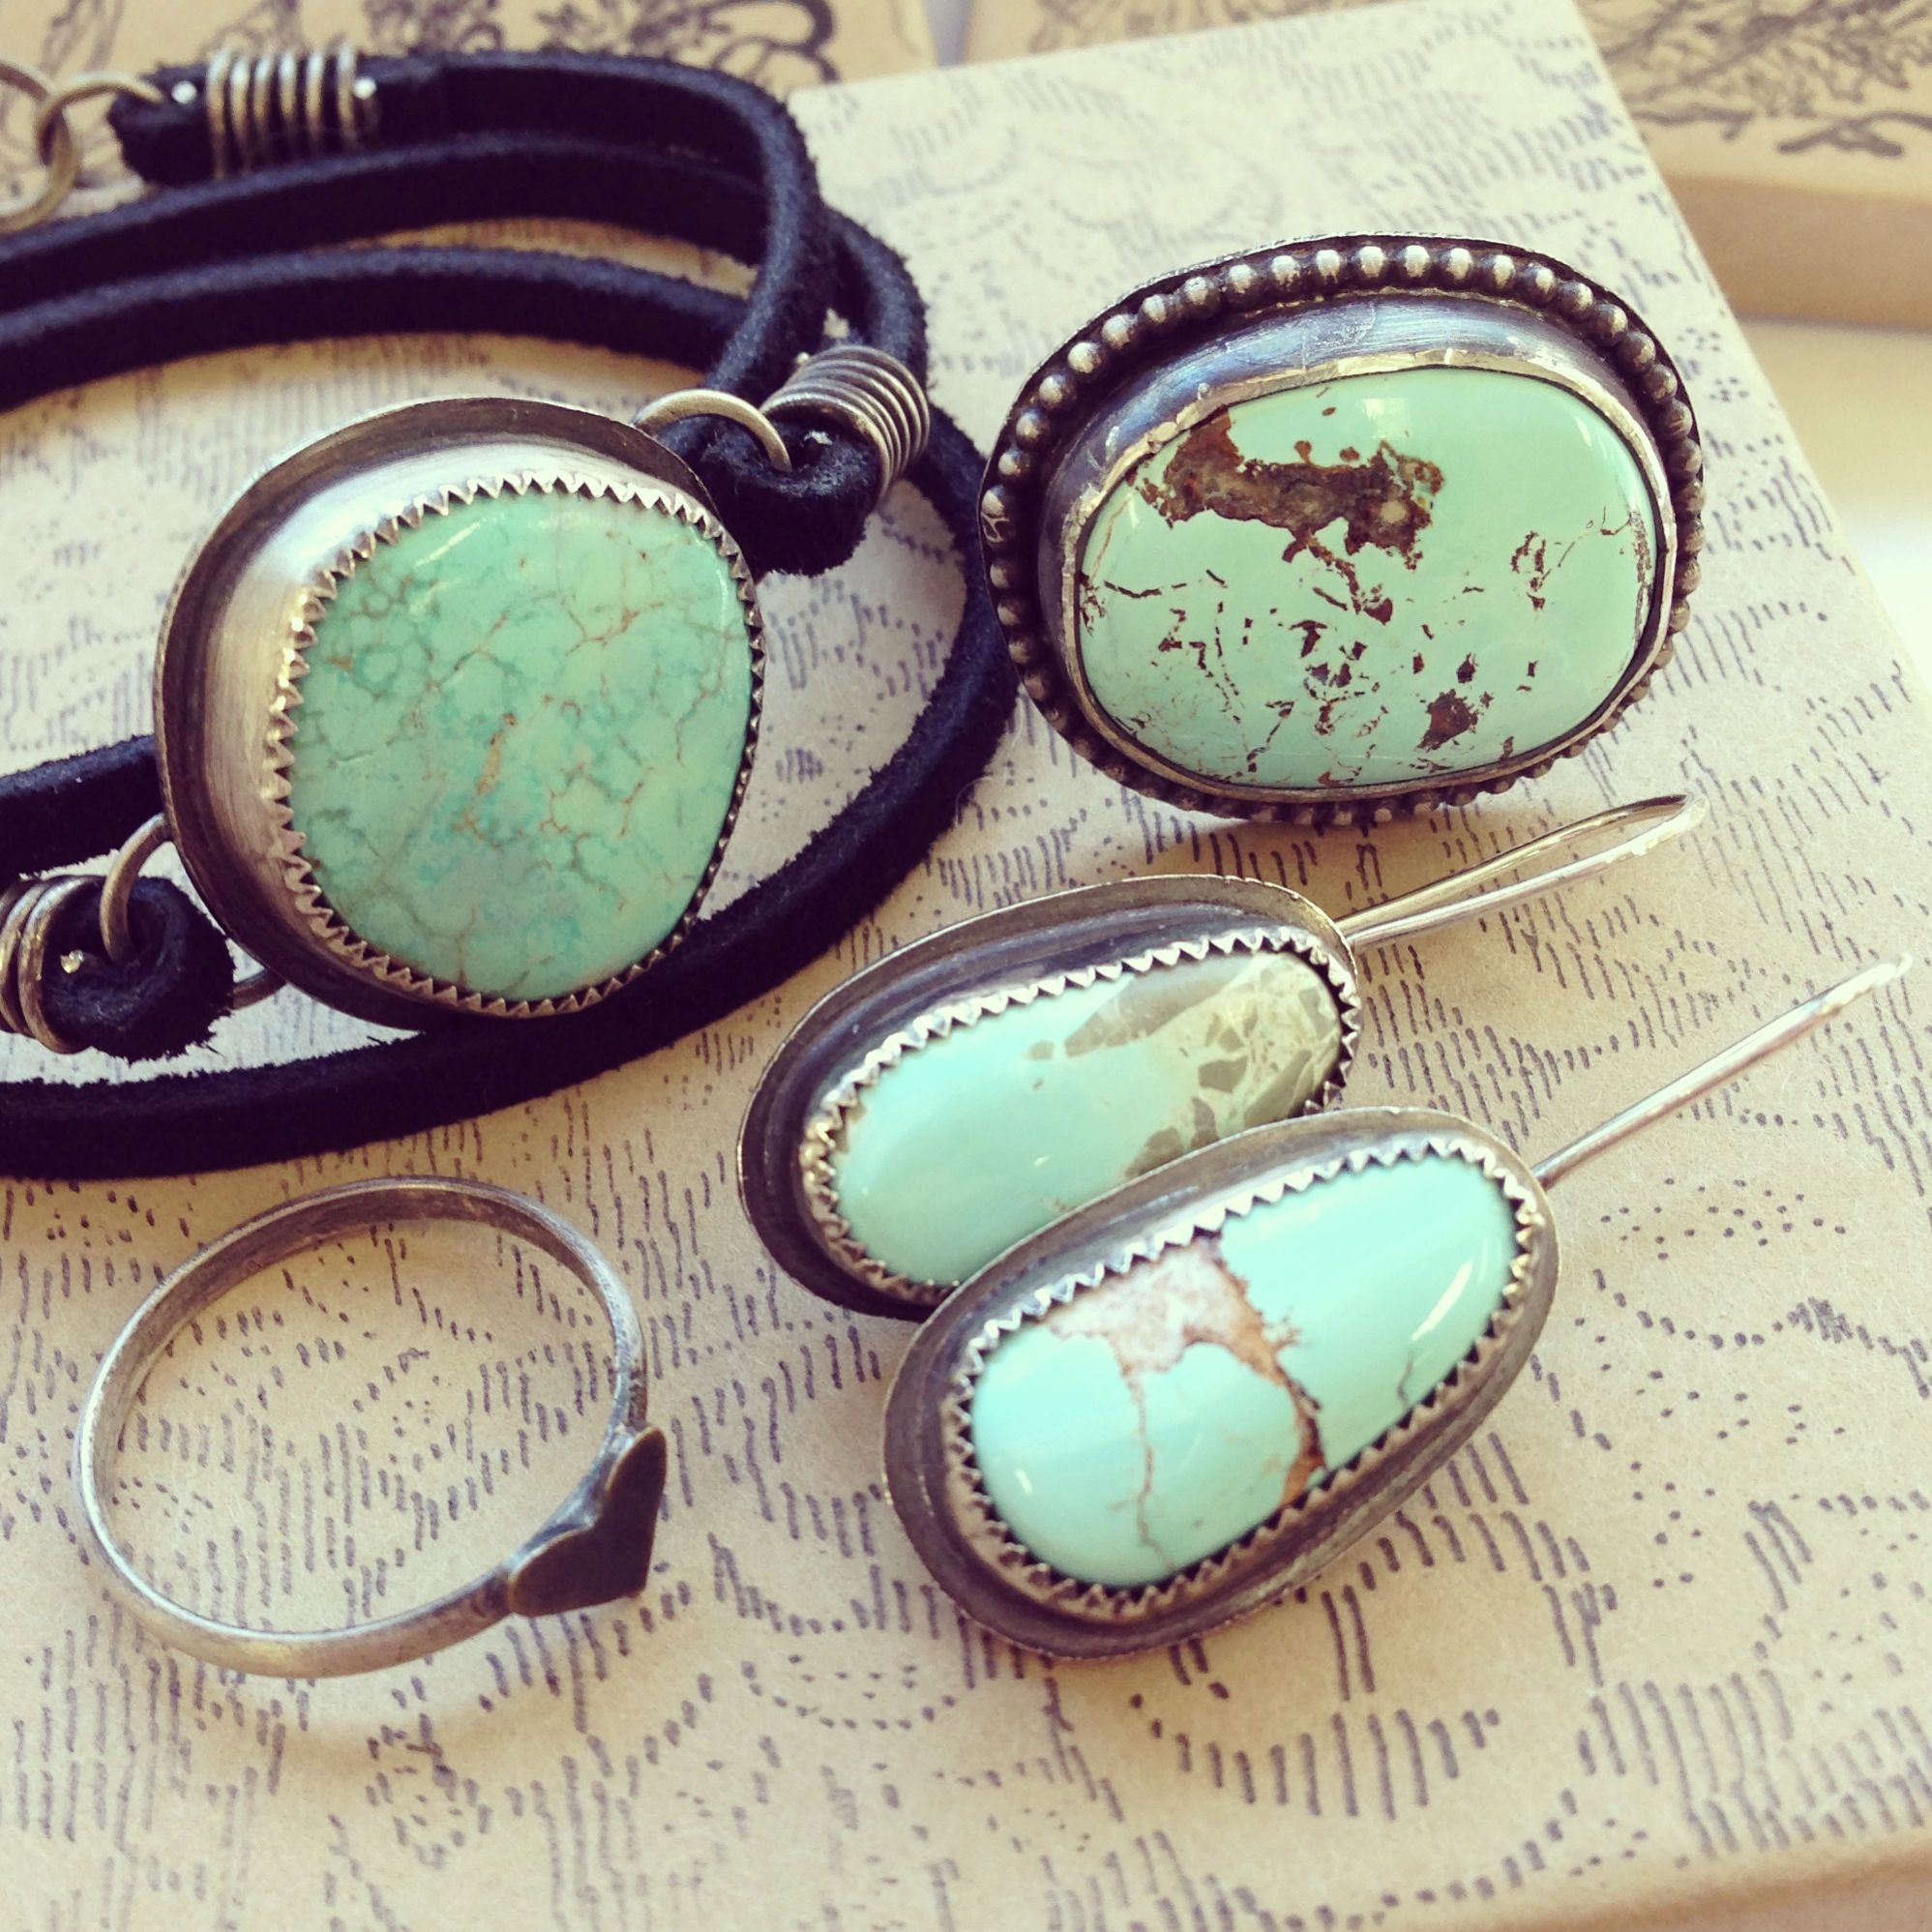 Light blue turquoise jewelry.